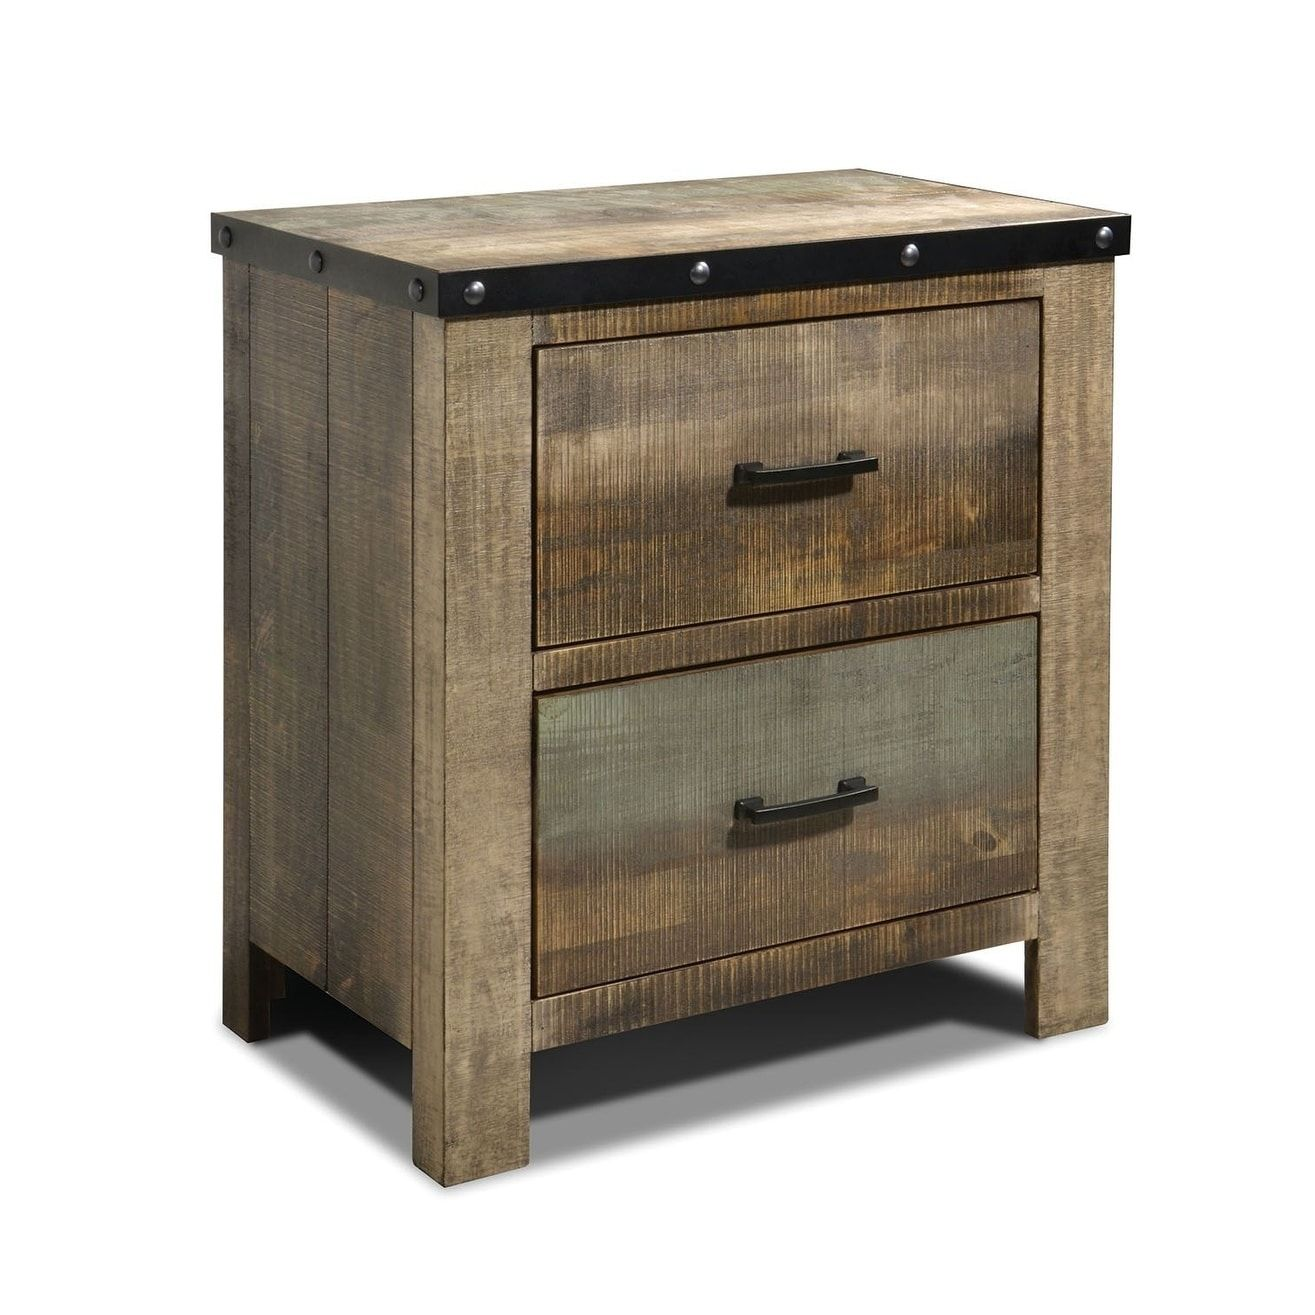 Wooden Nightstand with RoughSawn Design & Rivet Banding